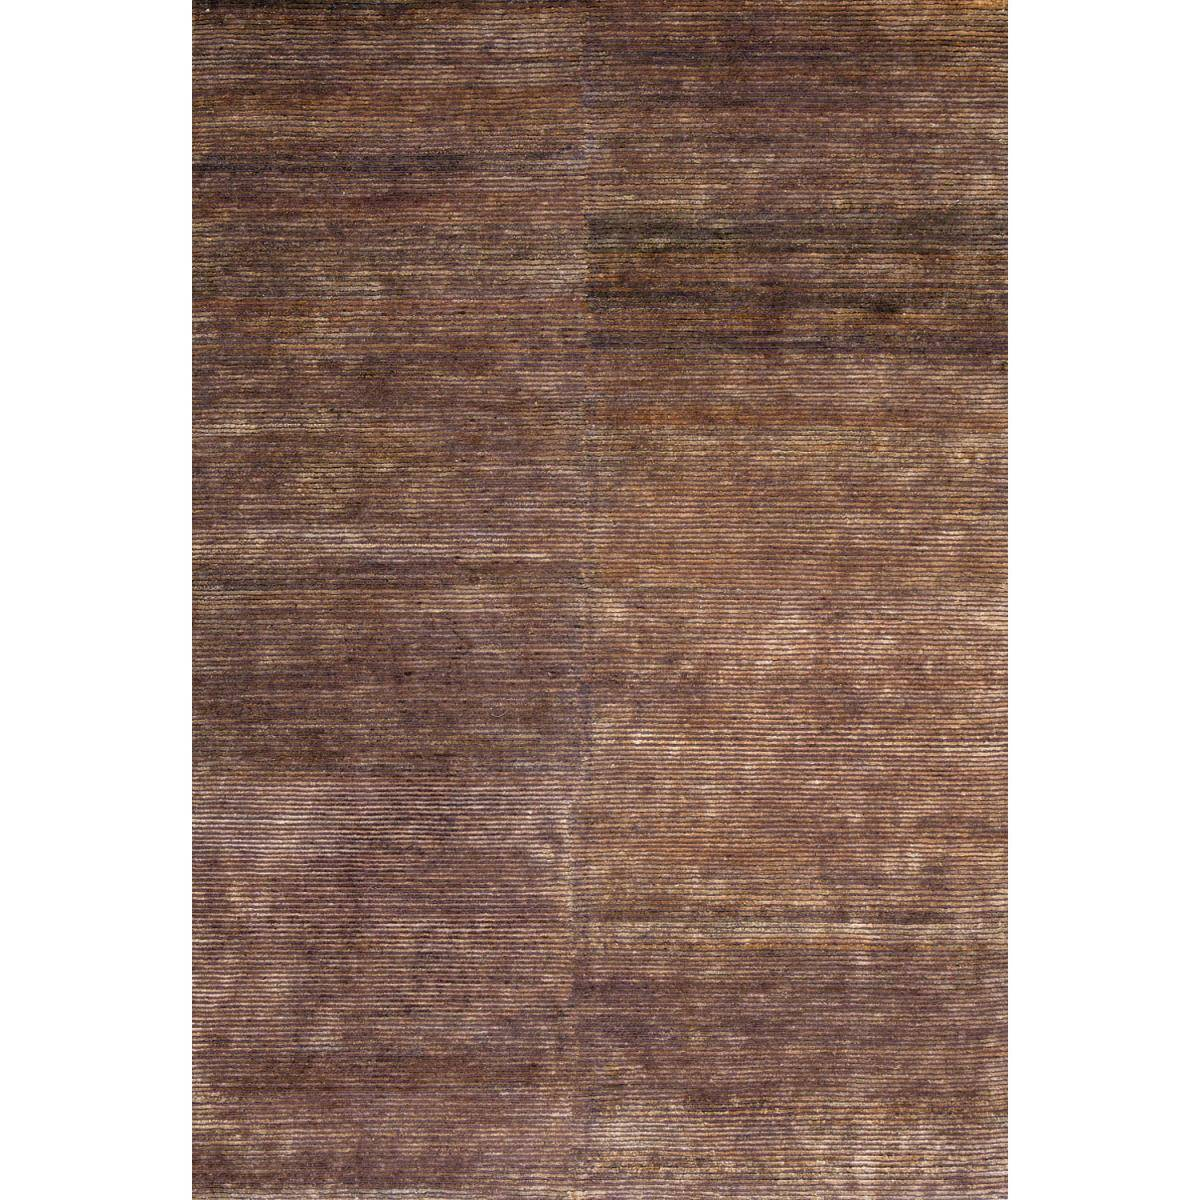 Pure Tapis design et moderne en chanvre marron 200x300